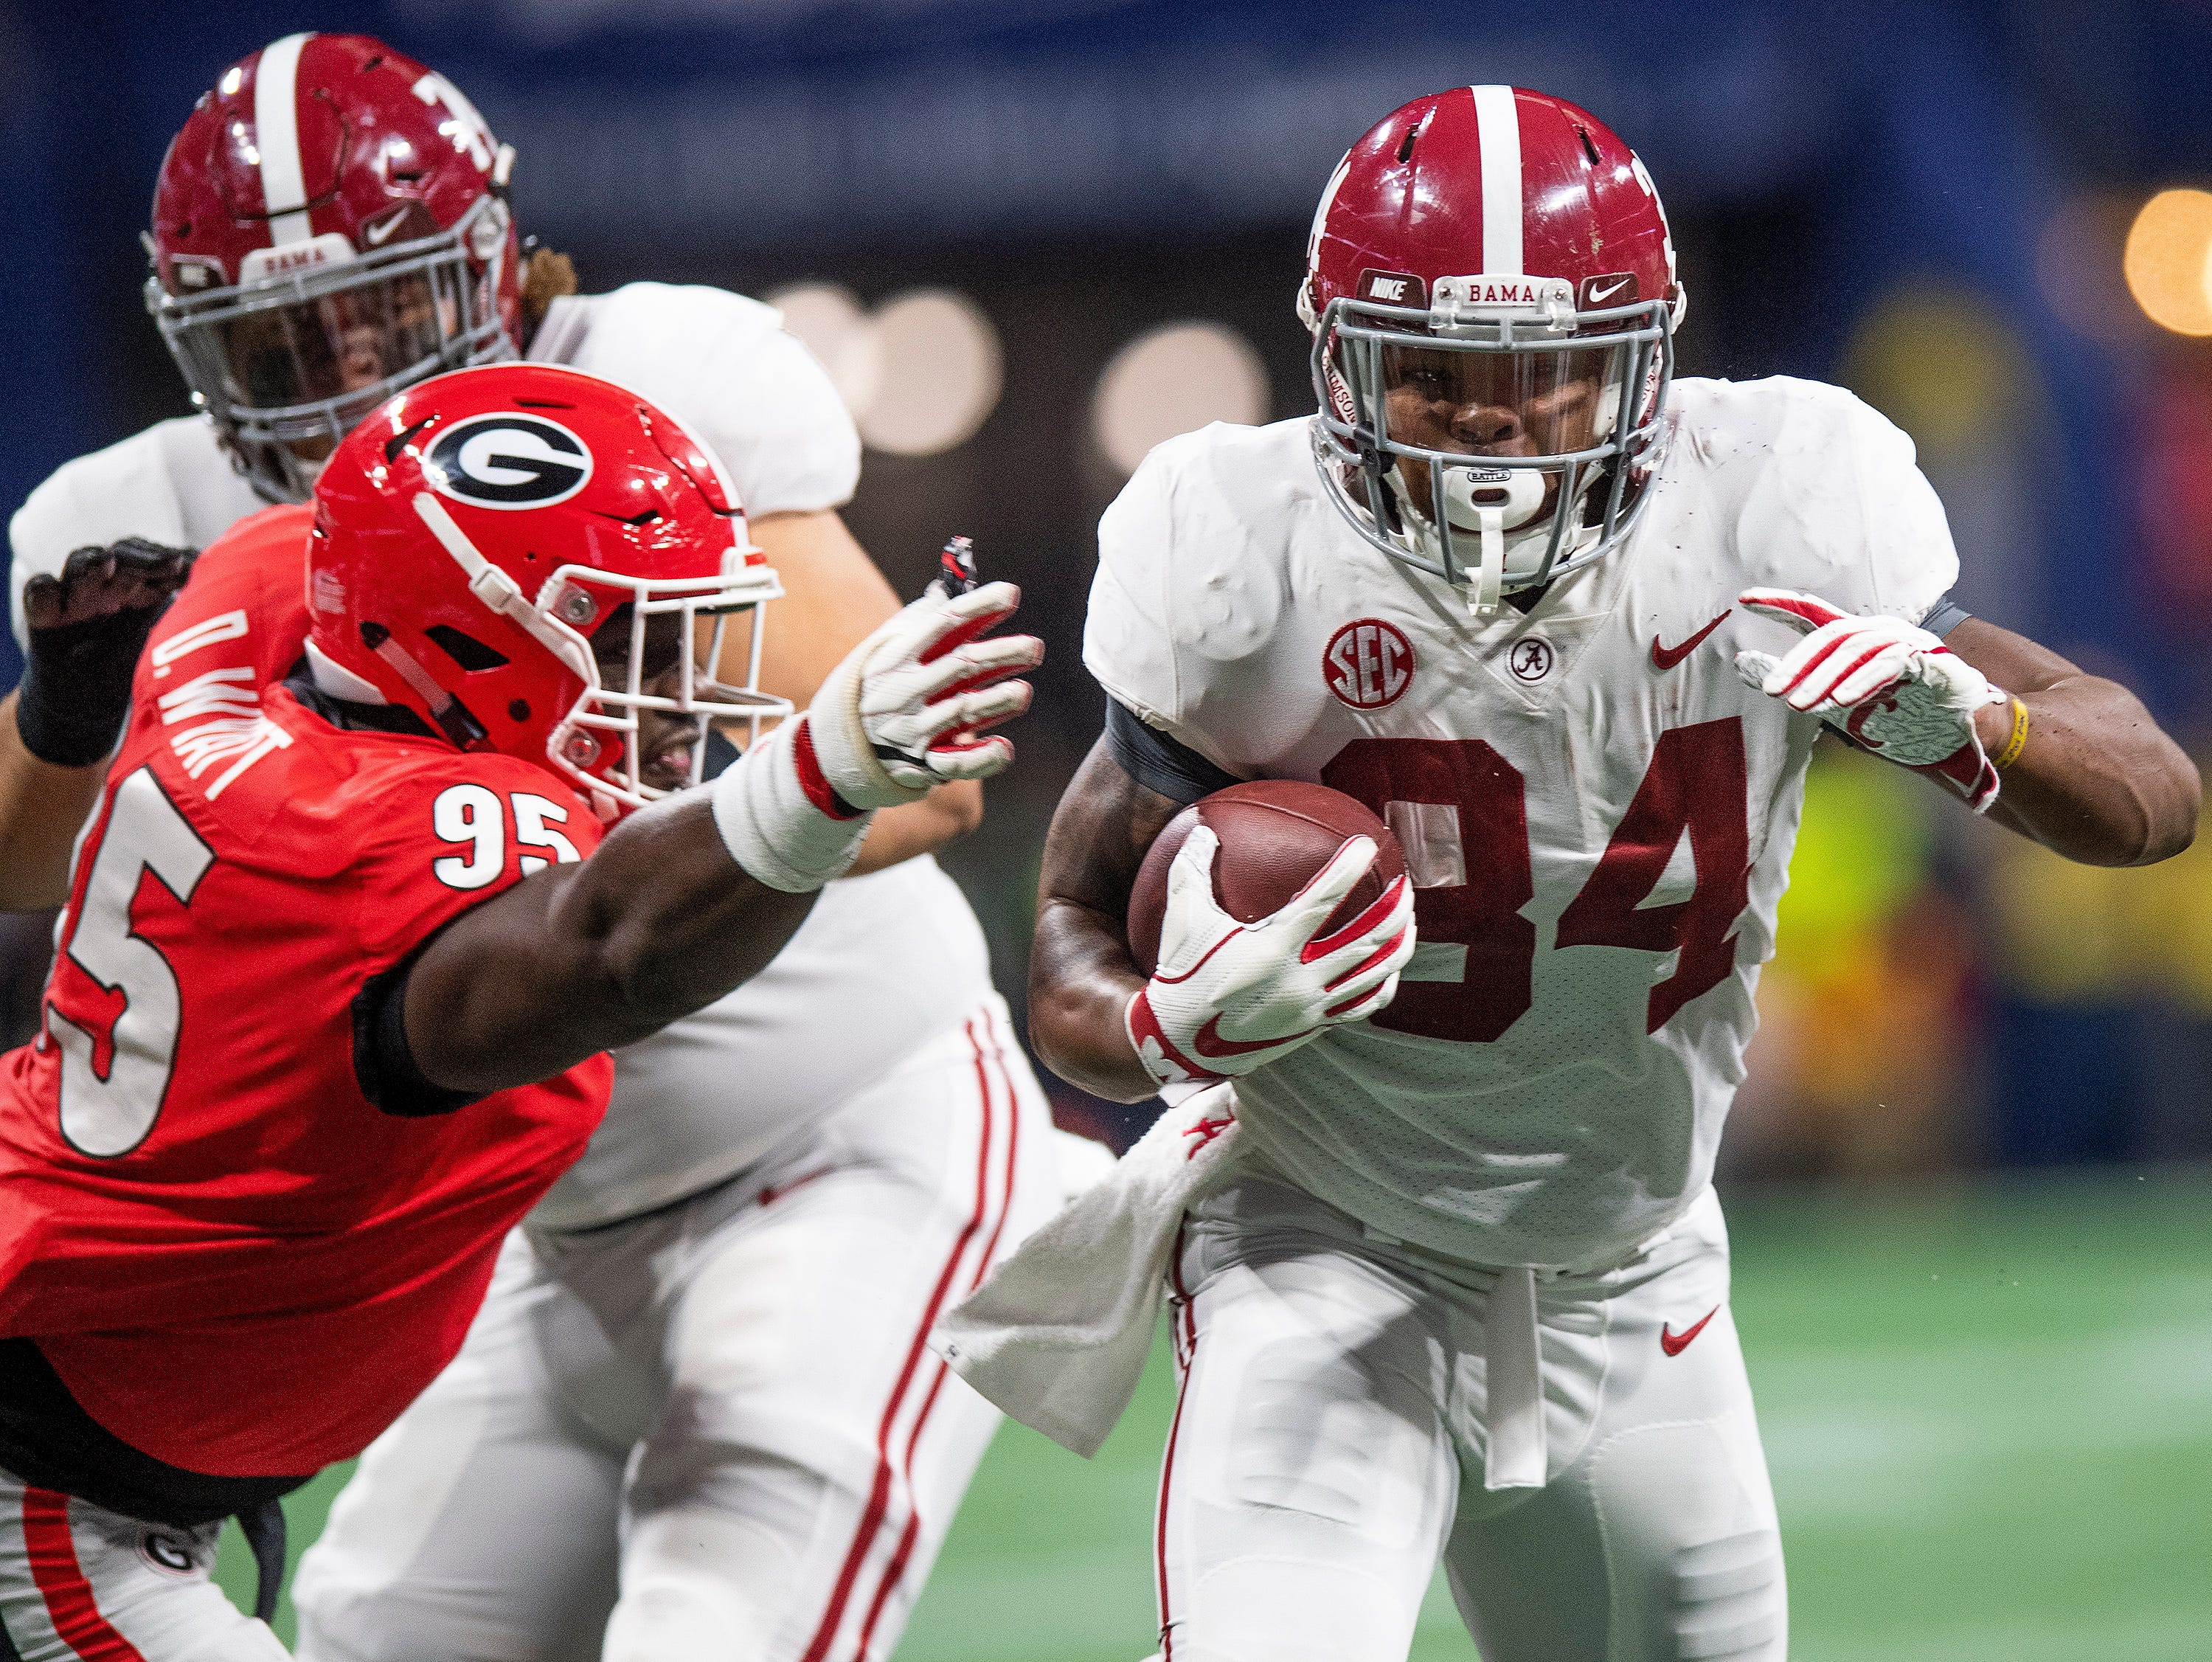 Alabama running back Damien Harris (34) carries the ball against Georgia during first half action of the SEC Championship Game at Mercedes Benz Stadium in Atlanta, Ga., on Saturday December 1, 2018.